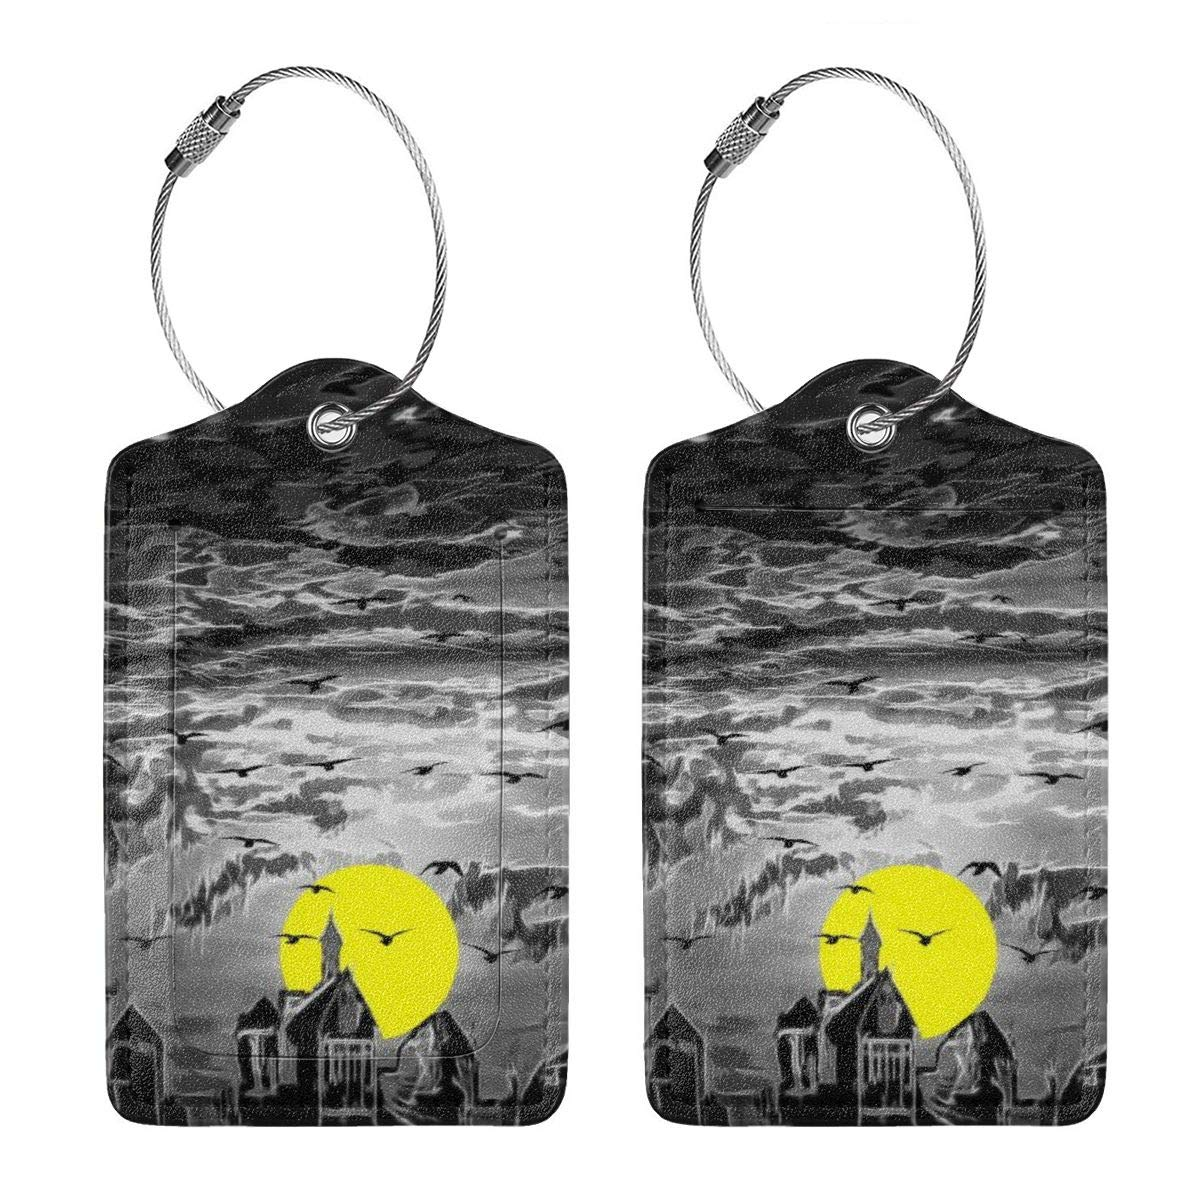 Yellow Moon Luggage Tag Label Travel Bag Label With Privacy Cover Luggage Tag Leather Personalized Suitcase Tag Travel Accessories